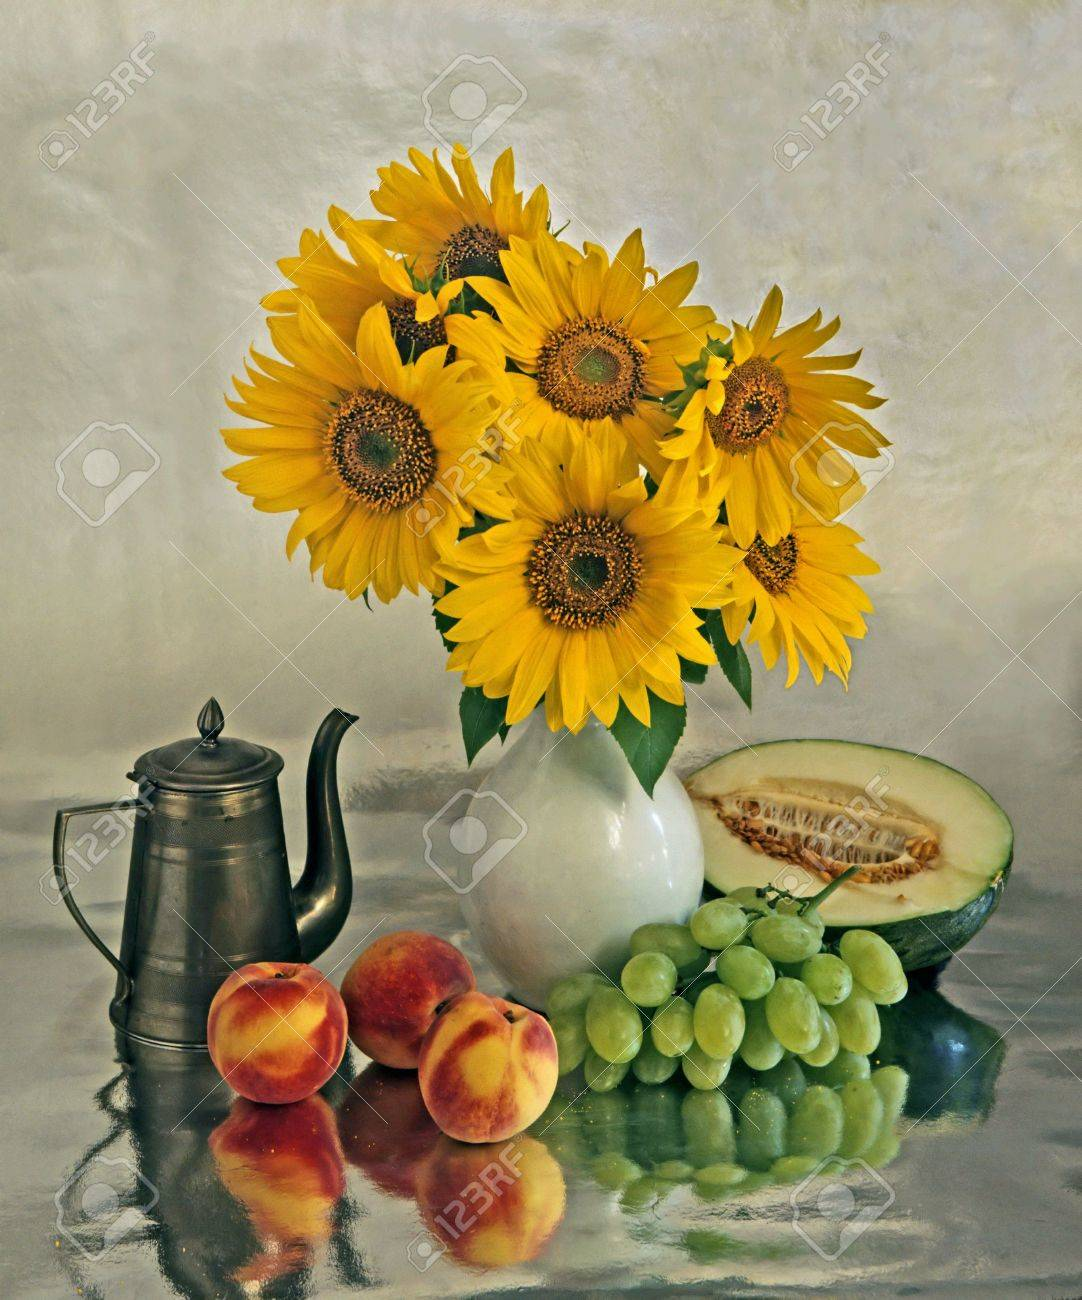 Still life with a sunflowers in vase and different fruits - 3662142